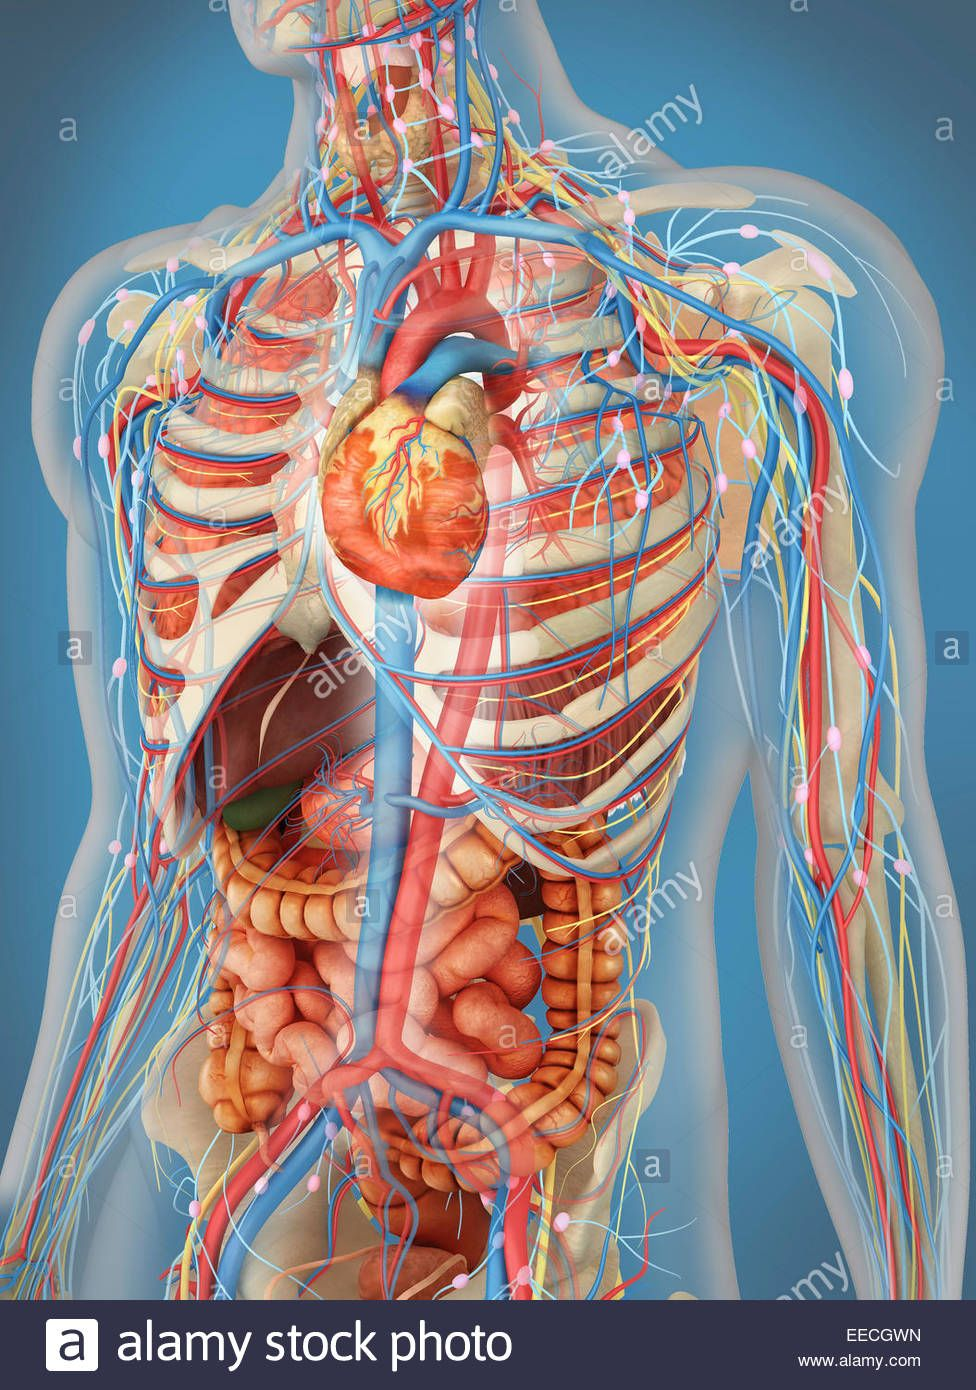 Image Of Human Internal Organs Anatomy Drawing Pinterest Heart Diagram And On Transparent Body Showing